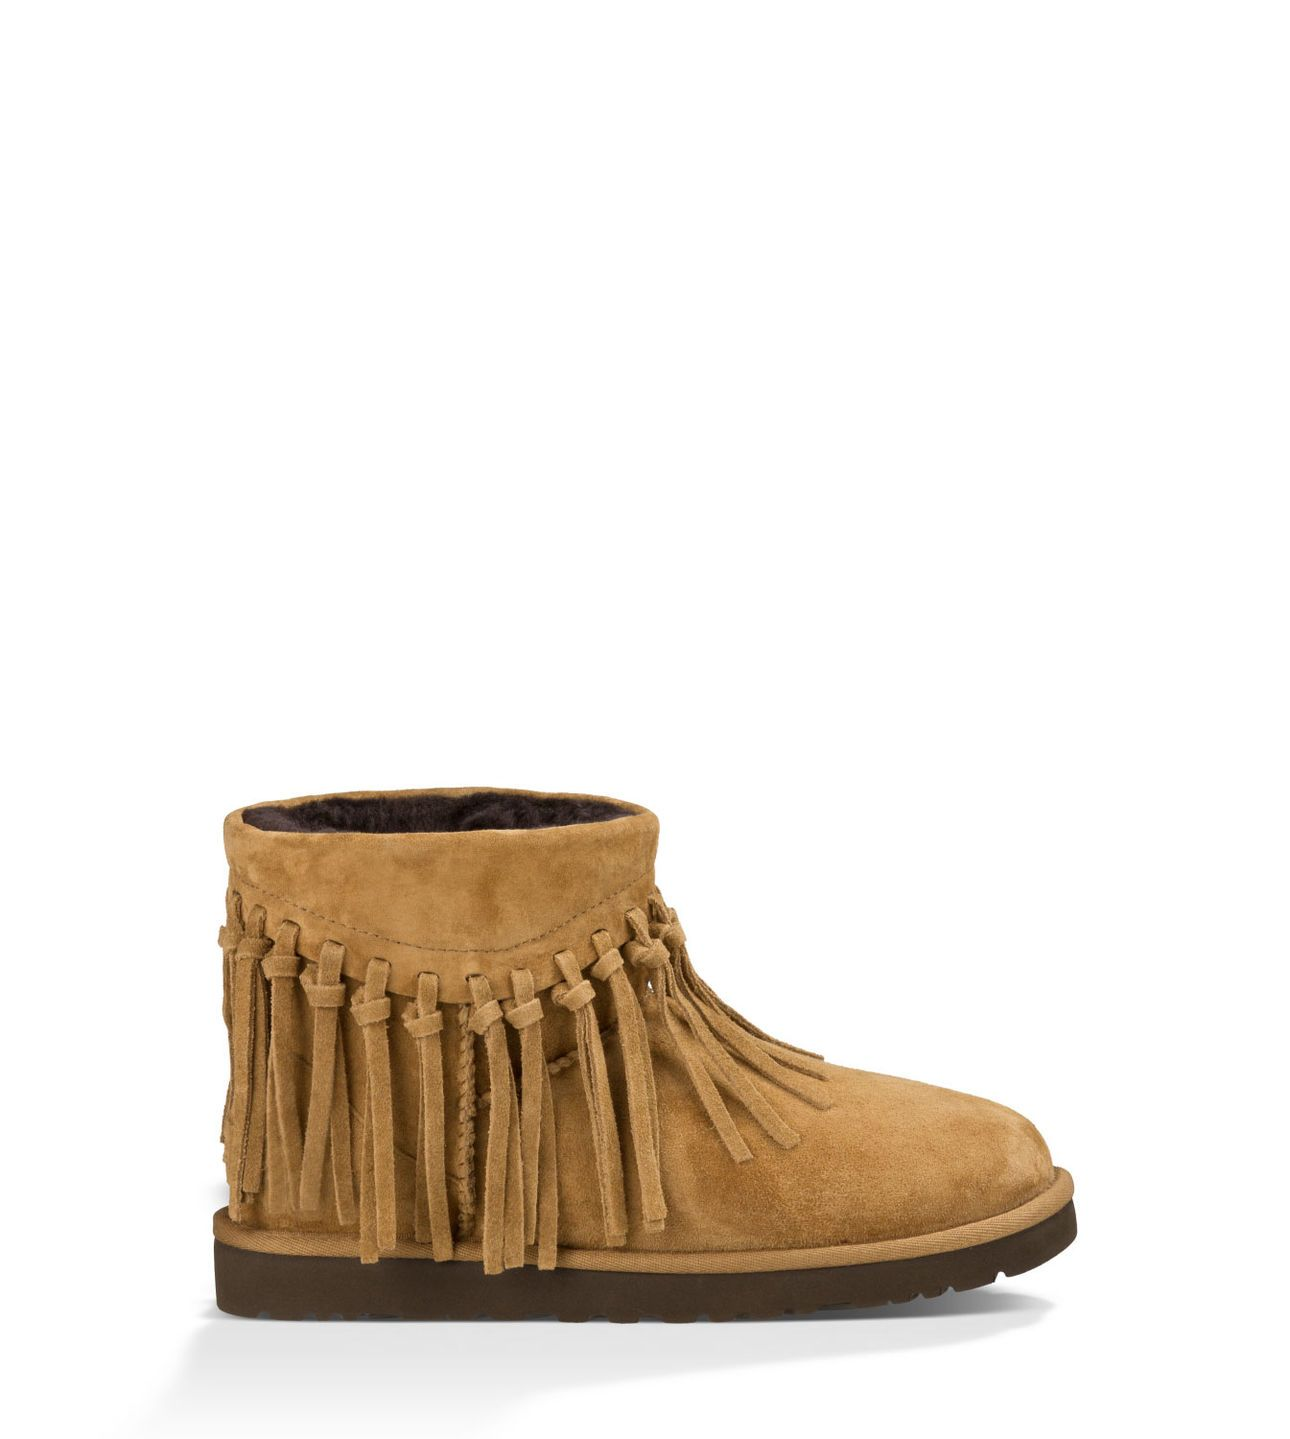 1f6c2d3dae8 Shop our collection of Women's Footwear including the Wynona Fringe ...